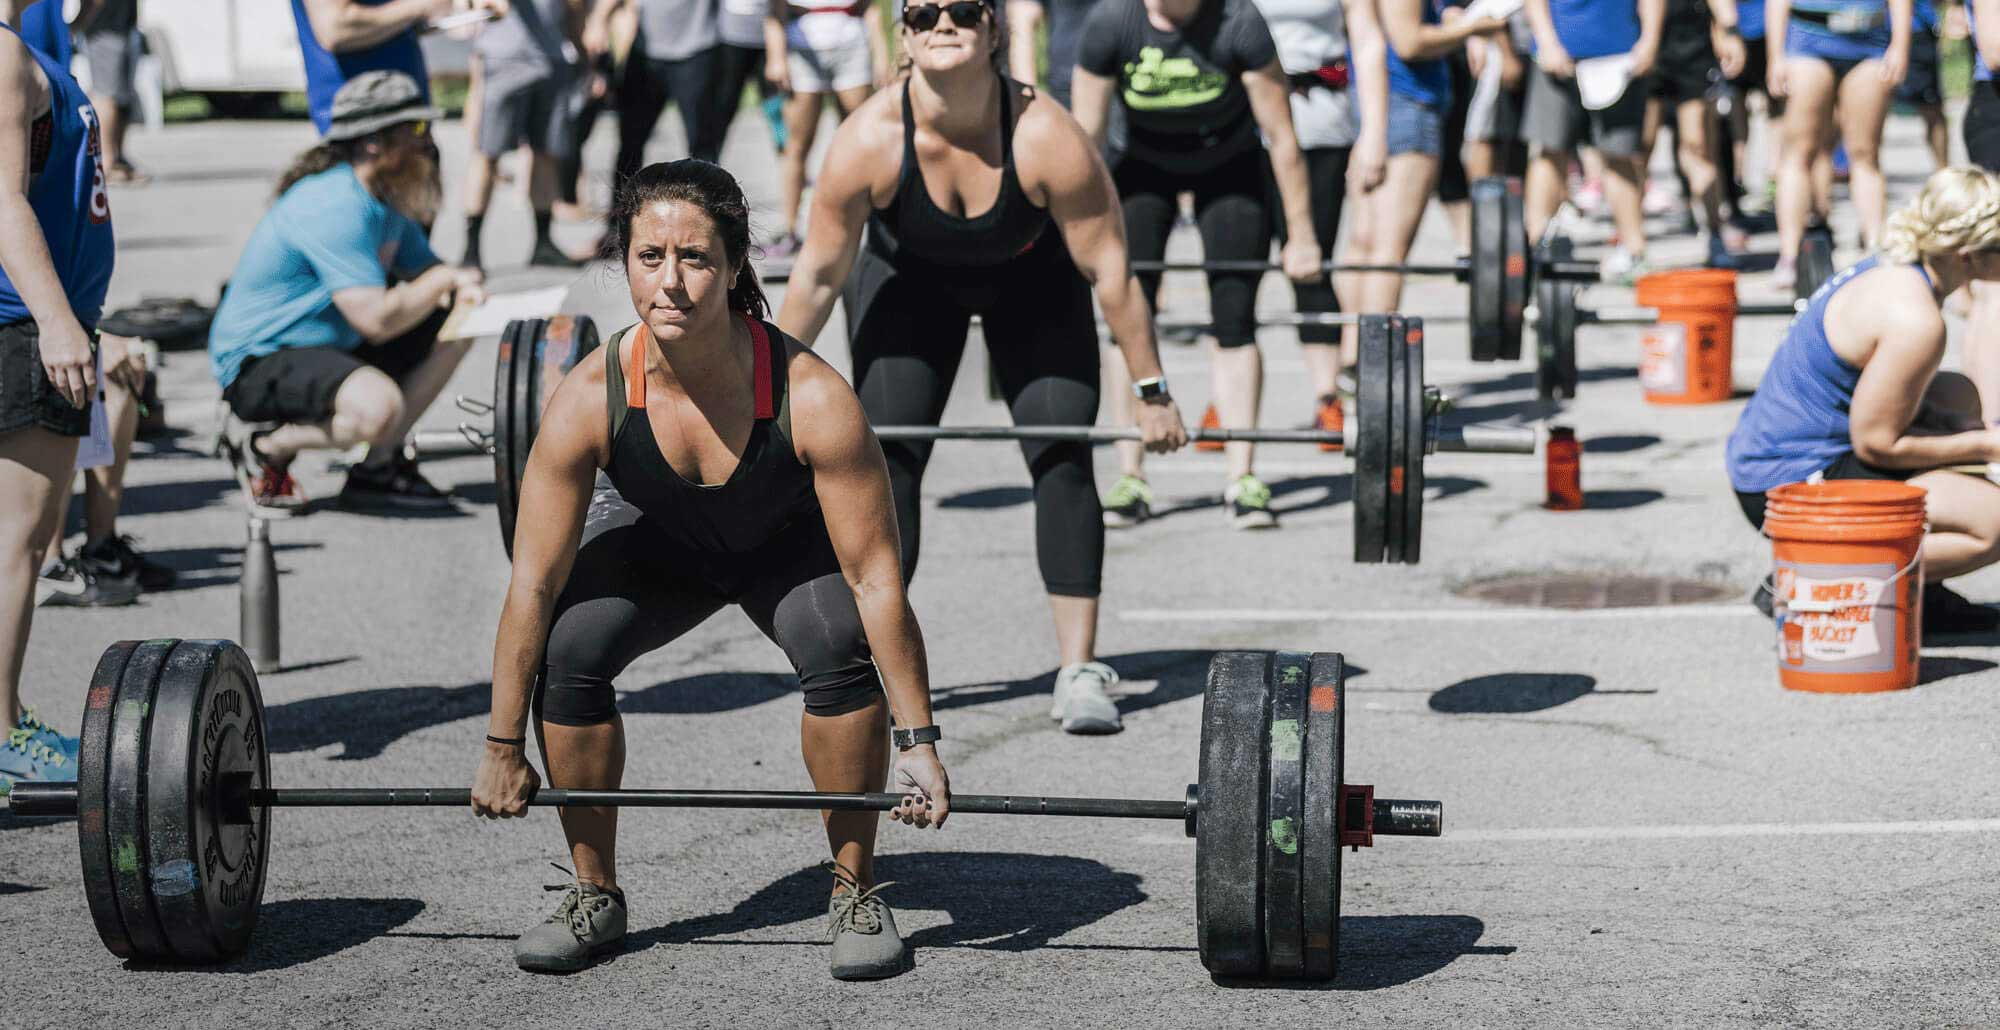 stress-competition-crossfit